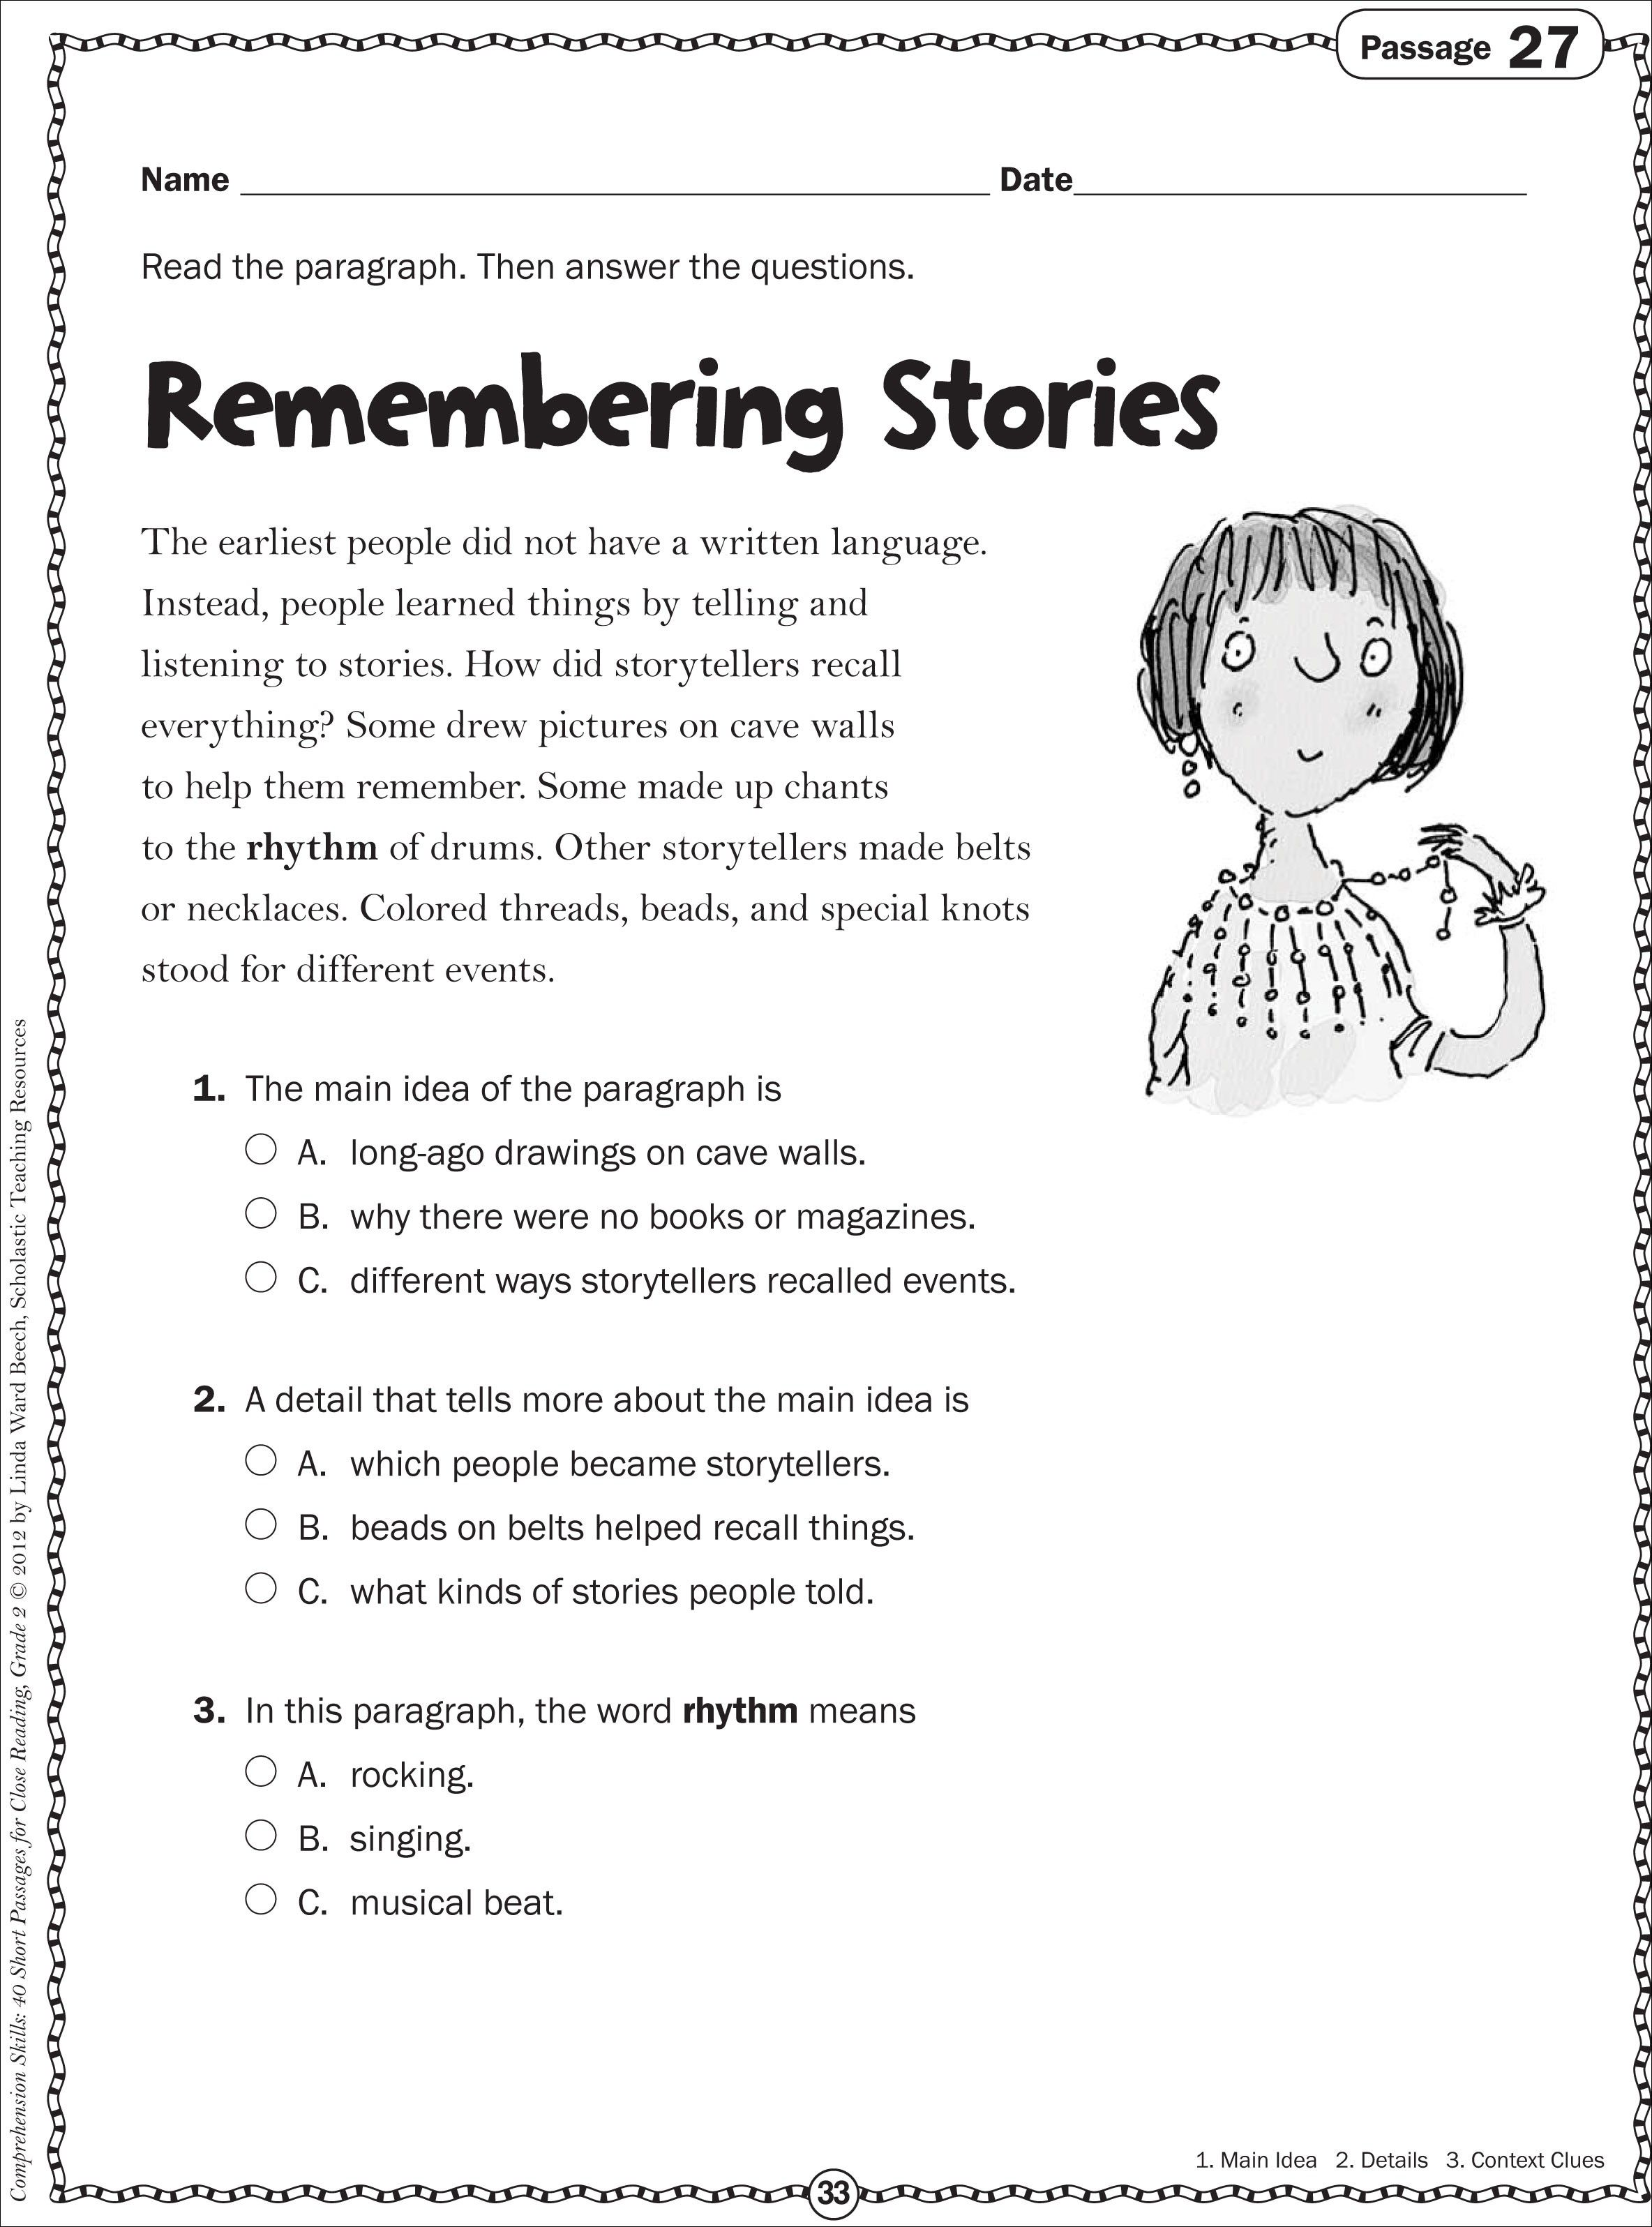 Worksheets Free 5th Grade Reading Worksheets grade 2 reading passages memarchoapraga school pinterest memarchoapraga